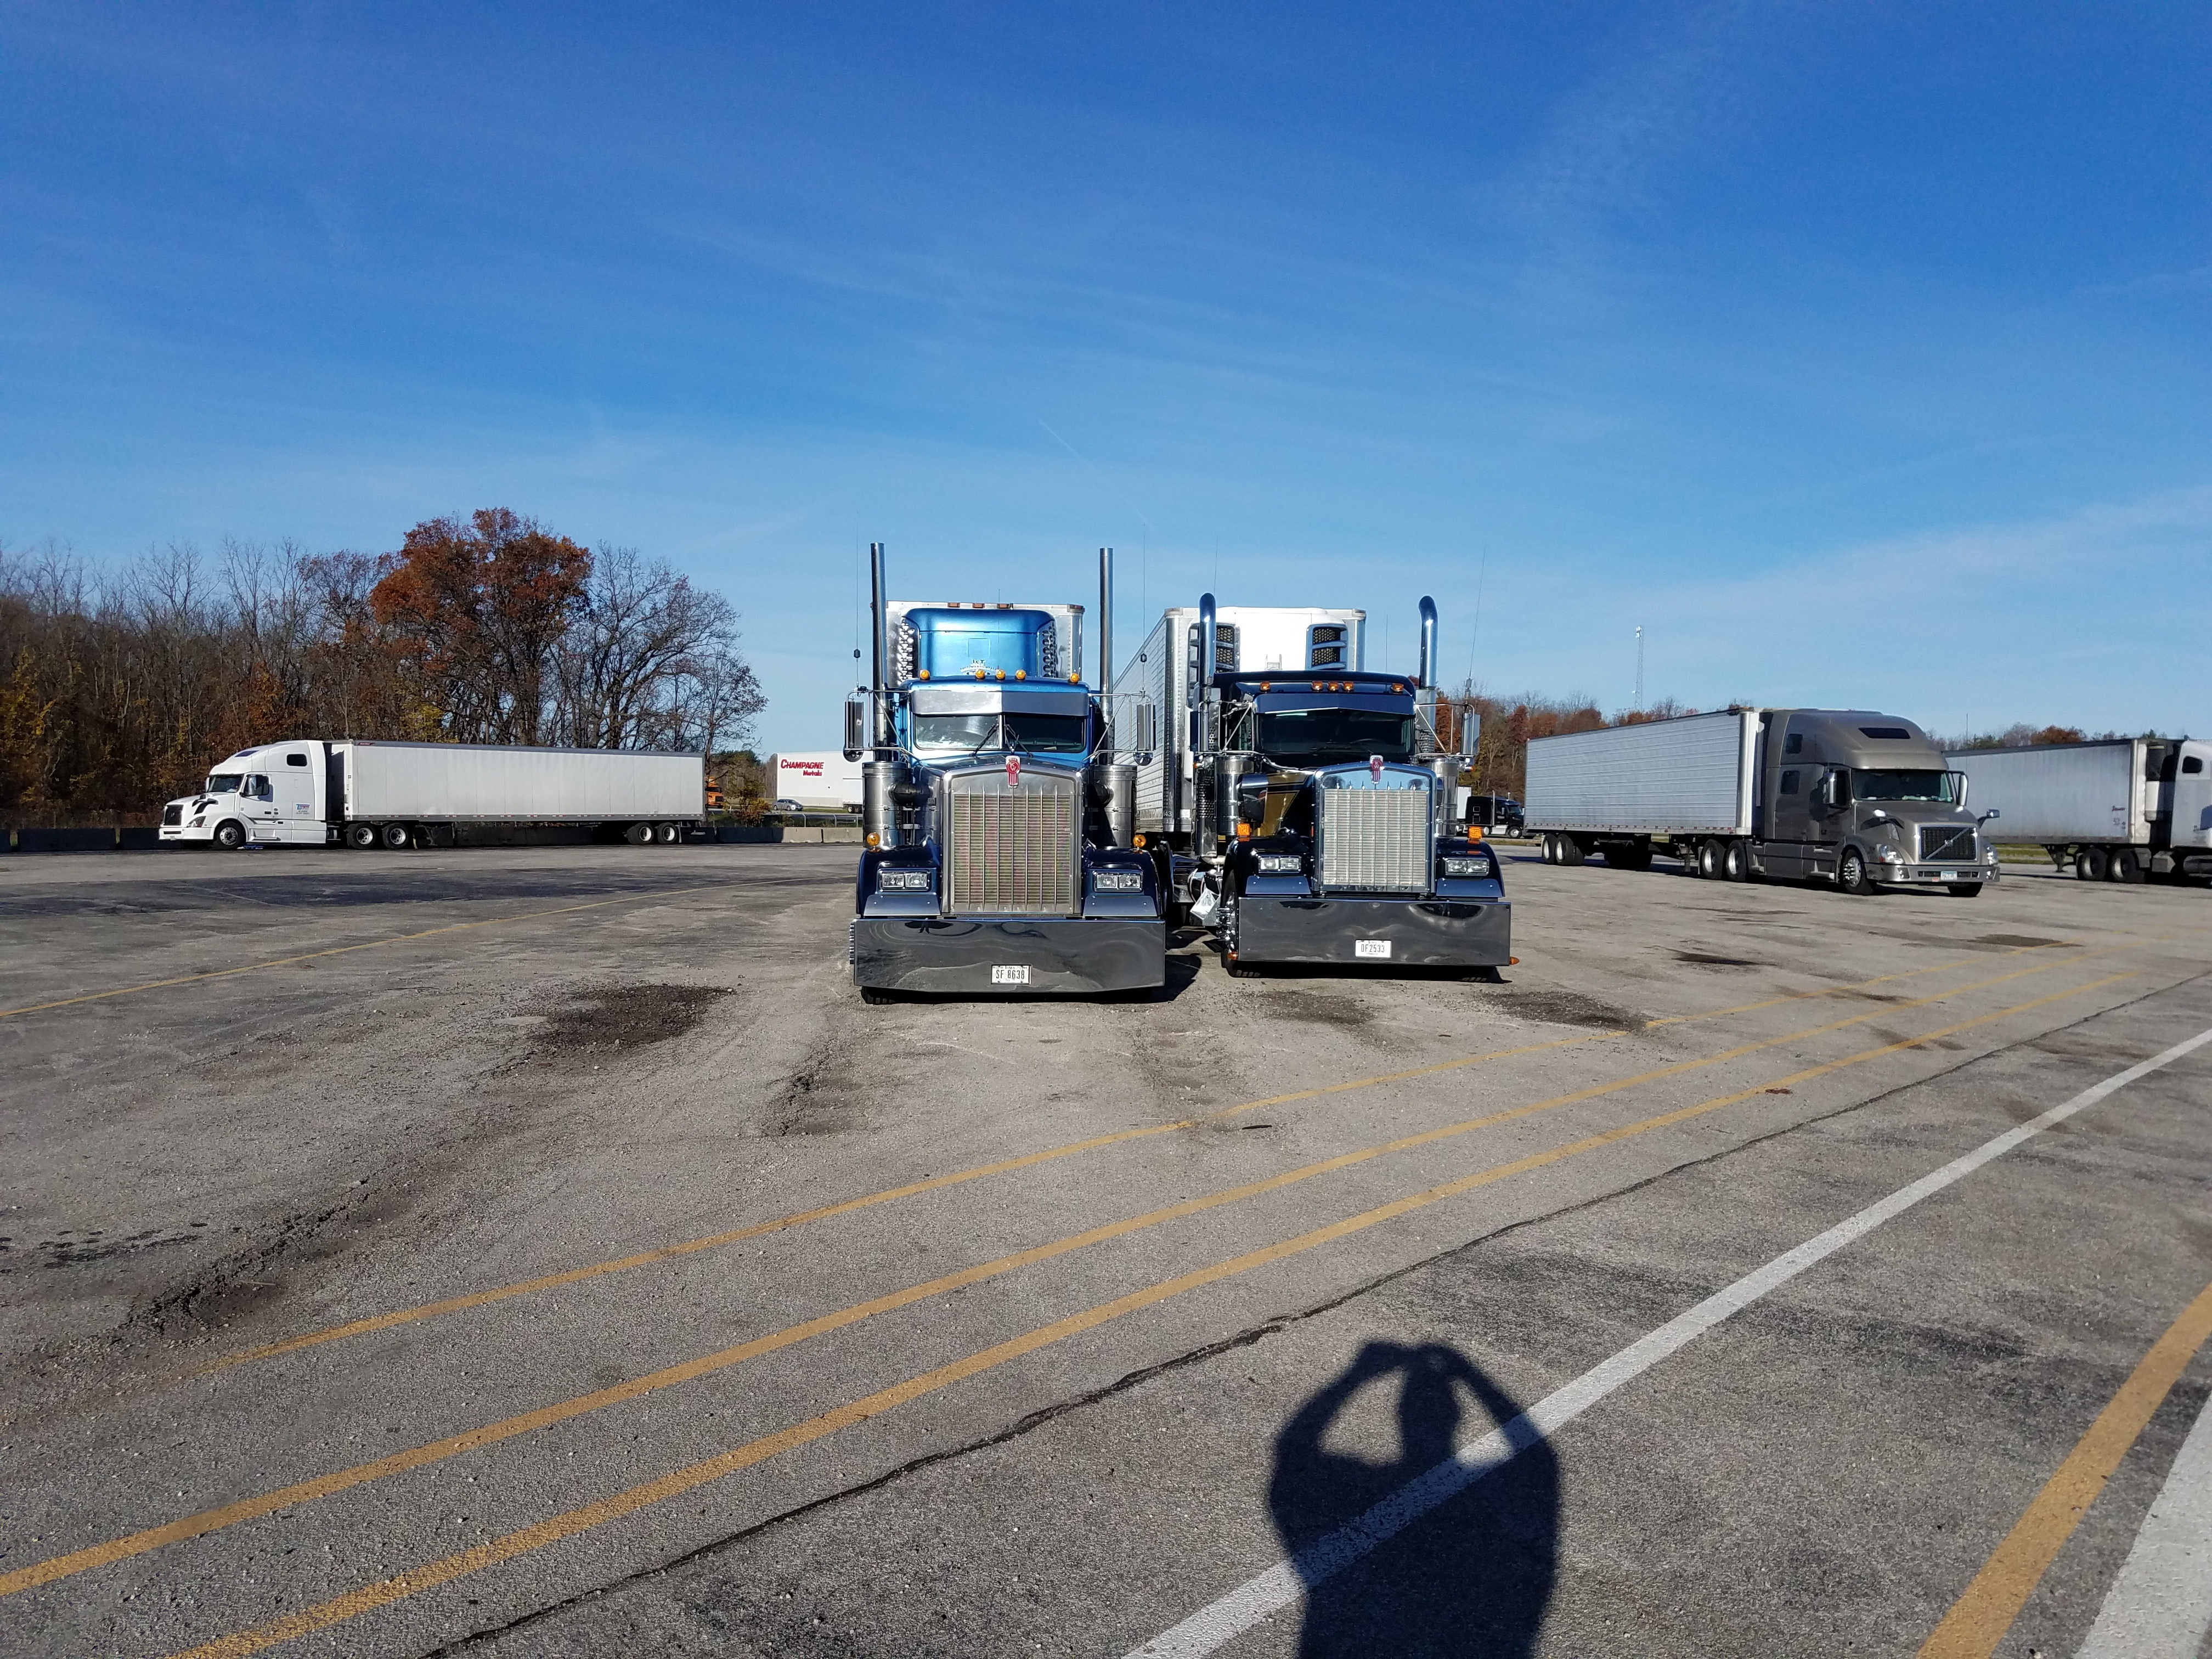 Tab's Big Rig, first picture.